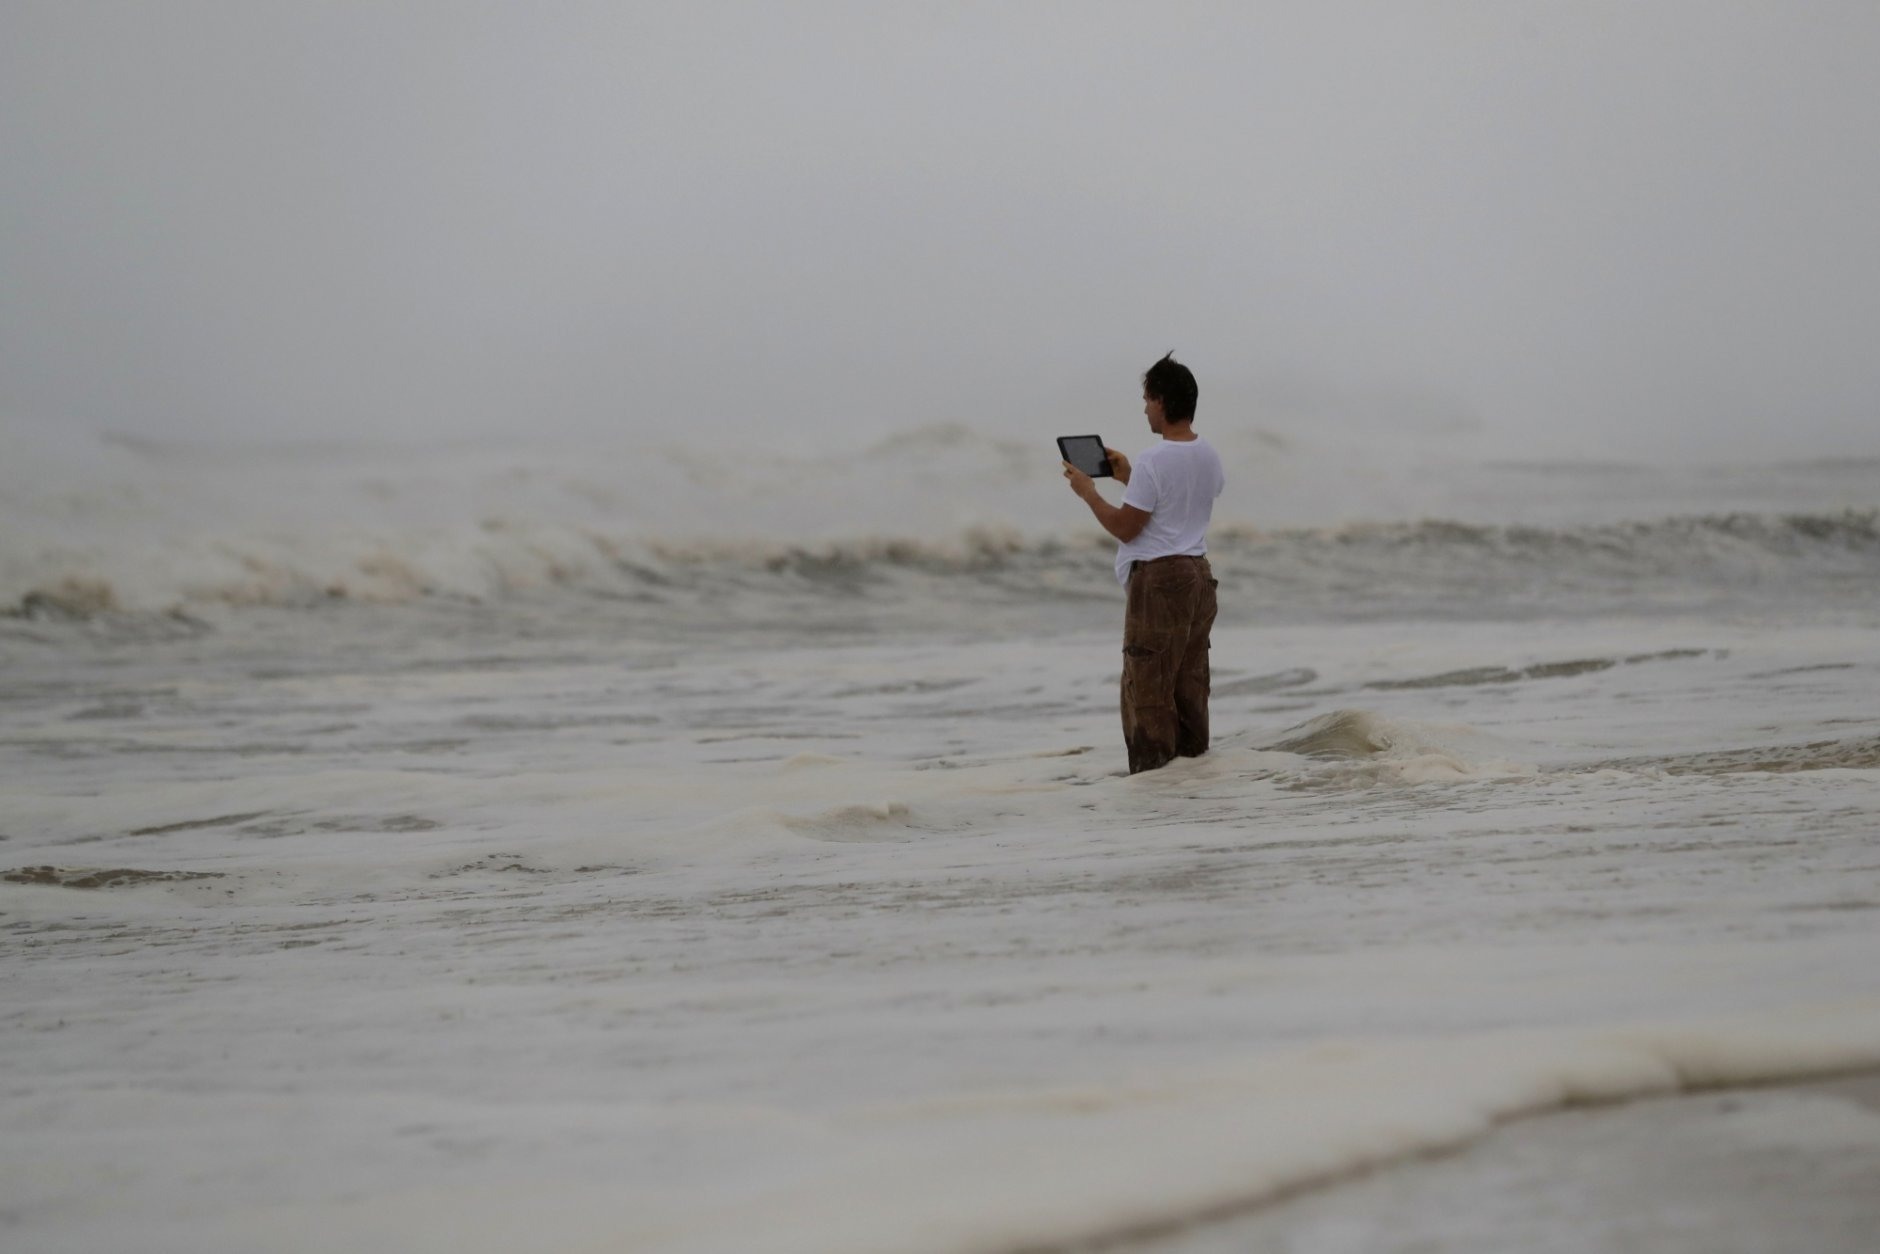 Peter Malave records the surf from encroaching Hurricane Michael, which is expected to make landfall today, in Panama City Beach, Fla., Wednesday, Oct. 10, 2018.  The hurricane center says Michael will be the first Category 4 hurricane to make landfall on the Florida Panhandle.  (AP Photo/Gerald Herbert)